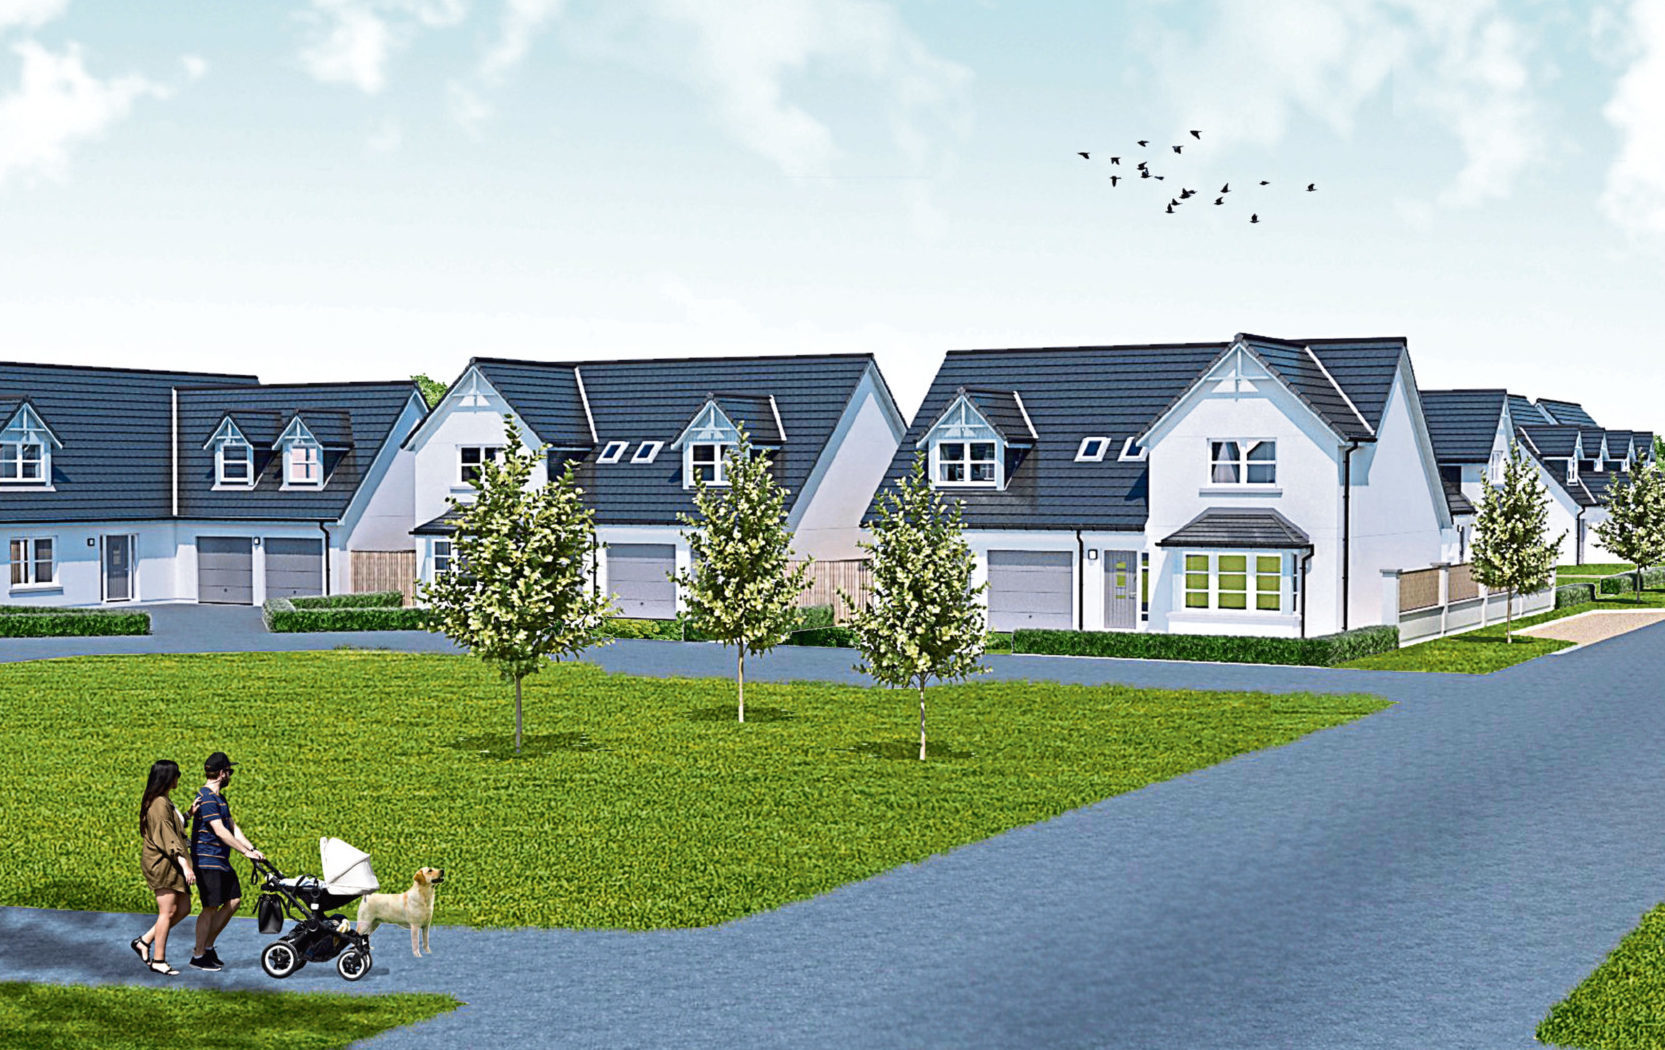 An artist's impression of the housing proposal.